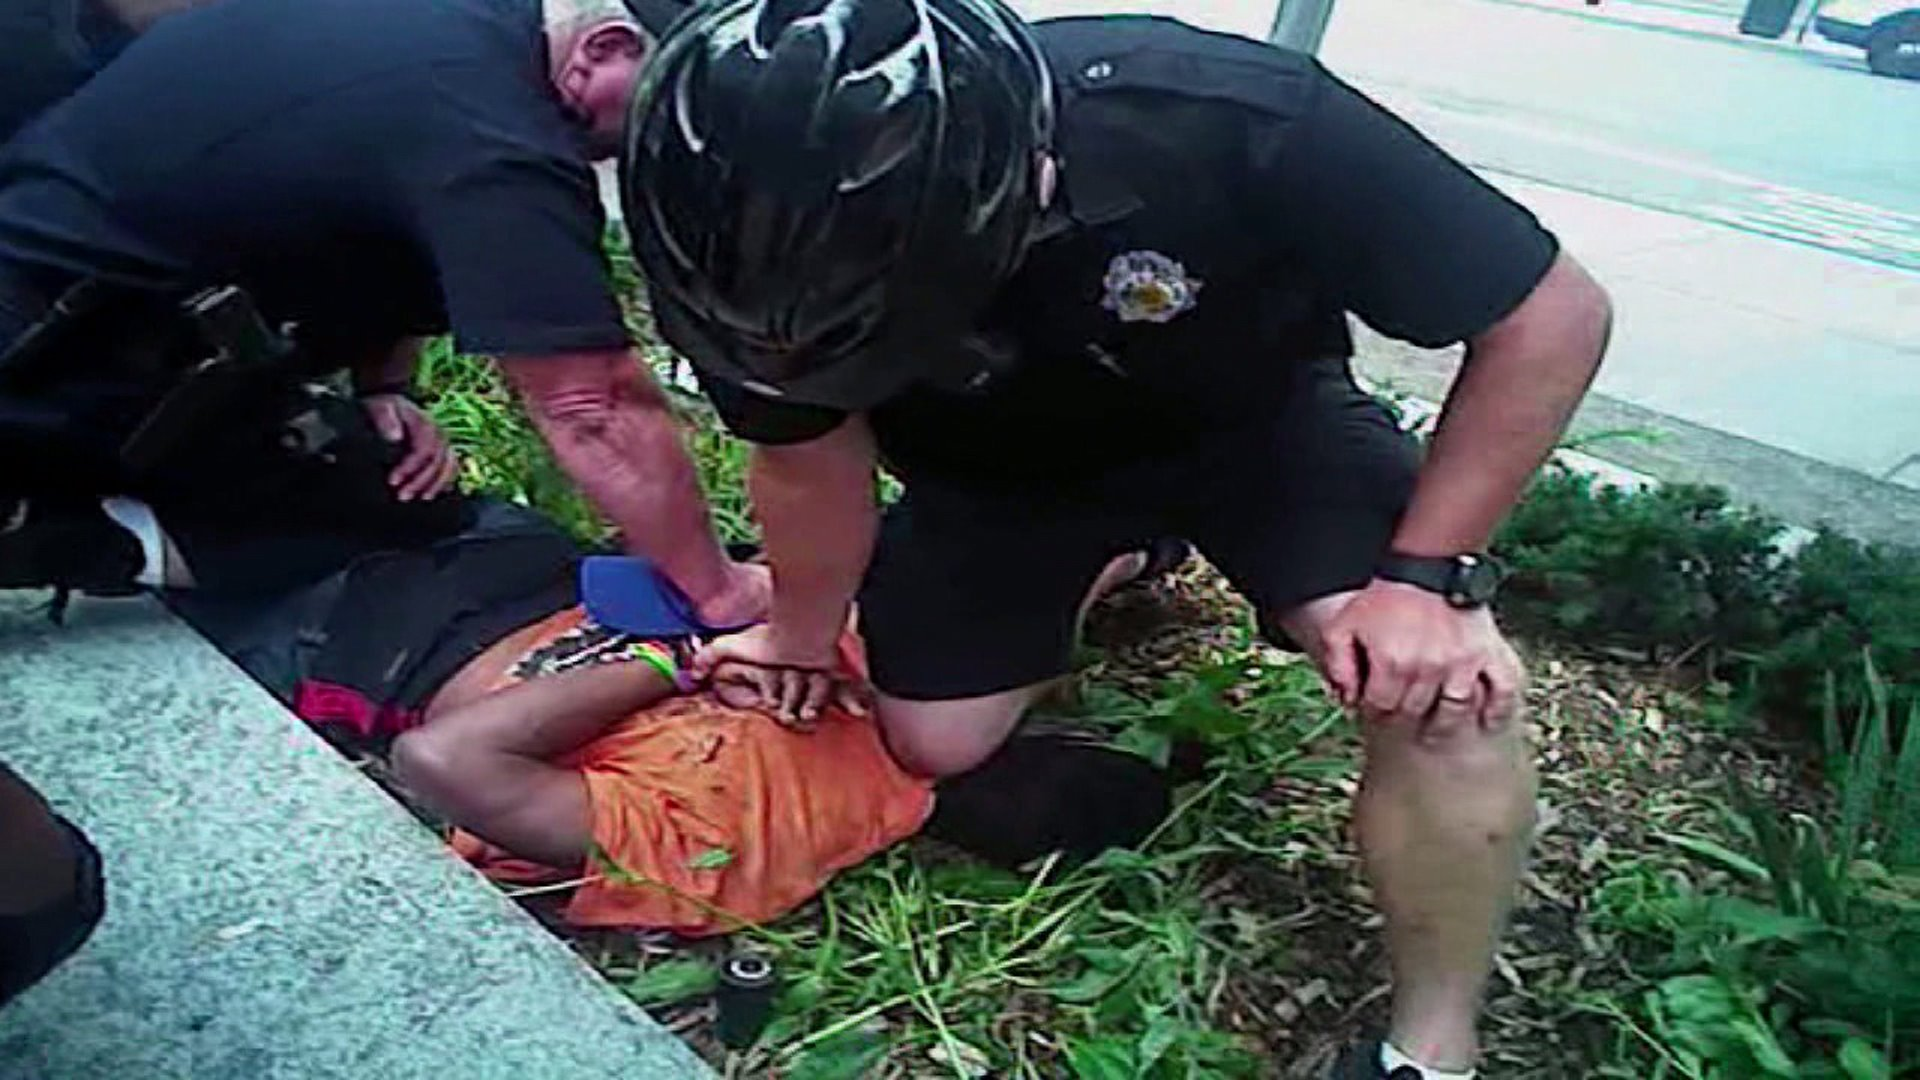 Body camera video shows excessive force